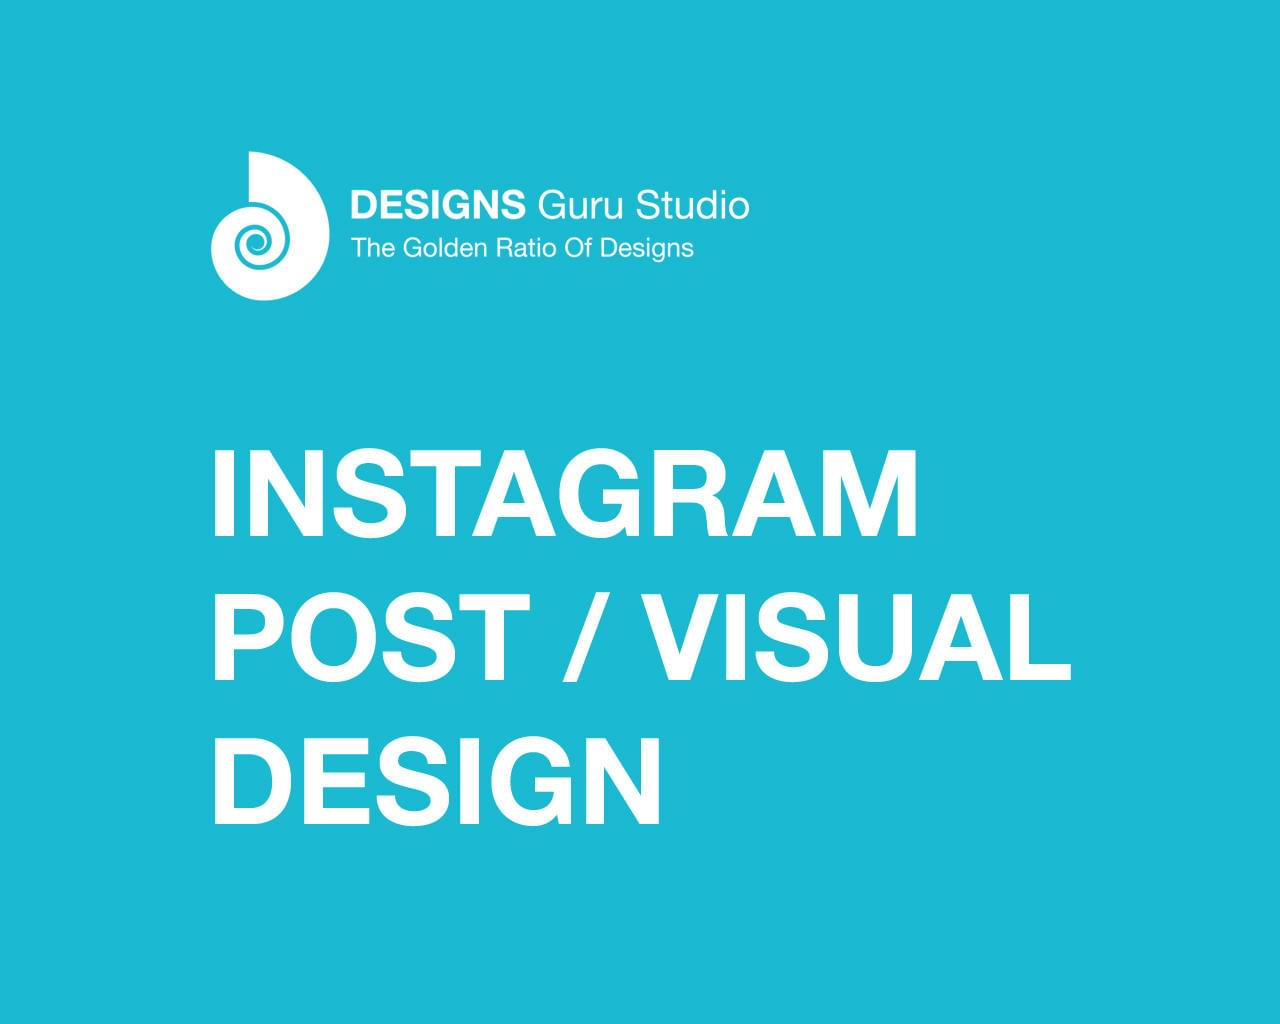 Instagram Post / Visual Design by designsgurustudio - 116359